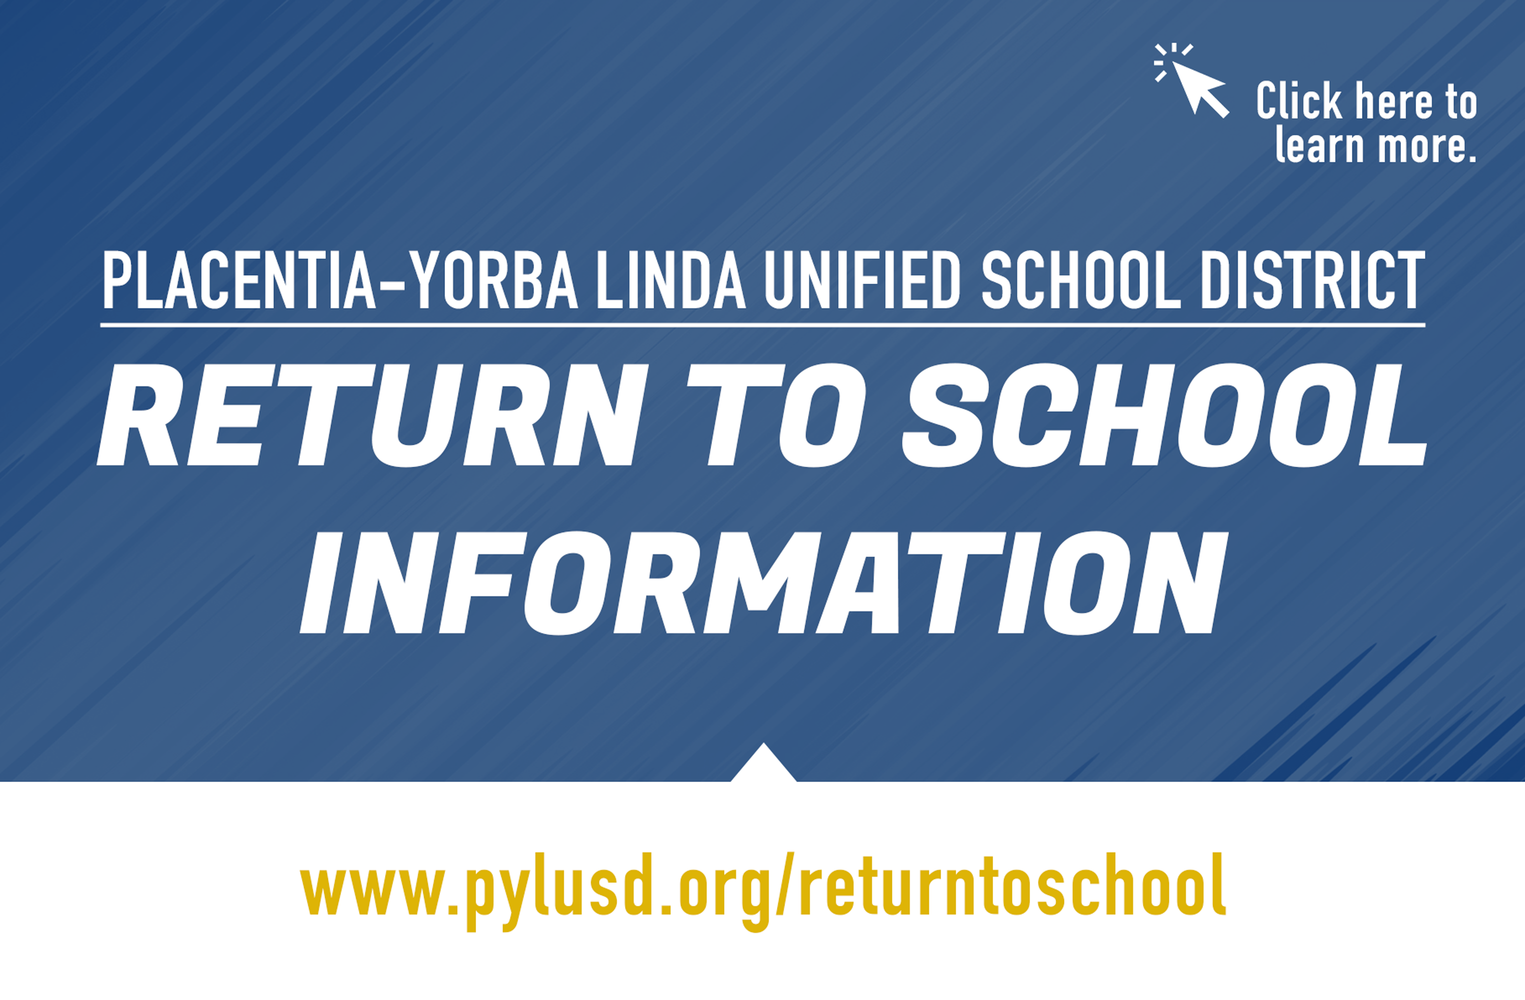 PYLUSD Return to School Information 2020.